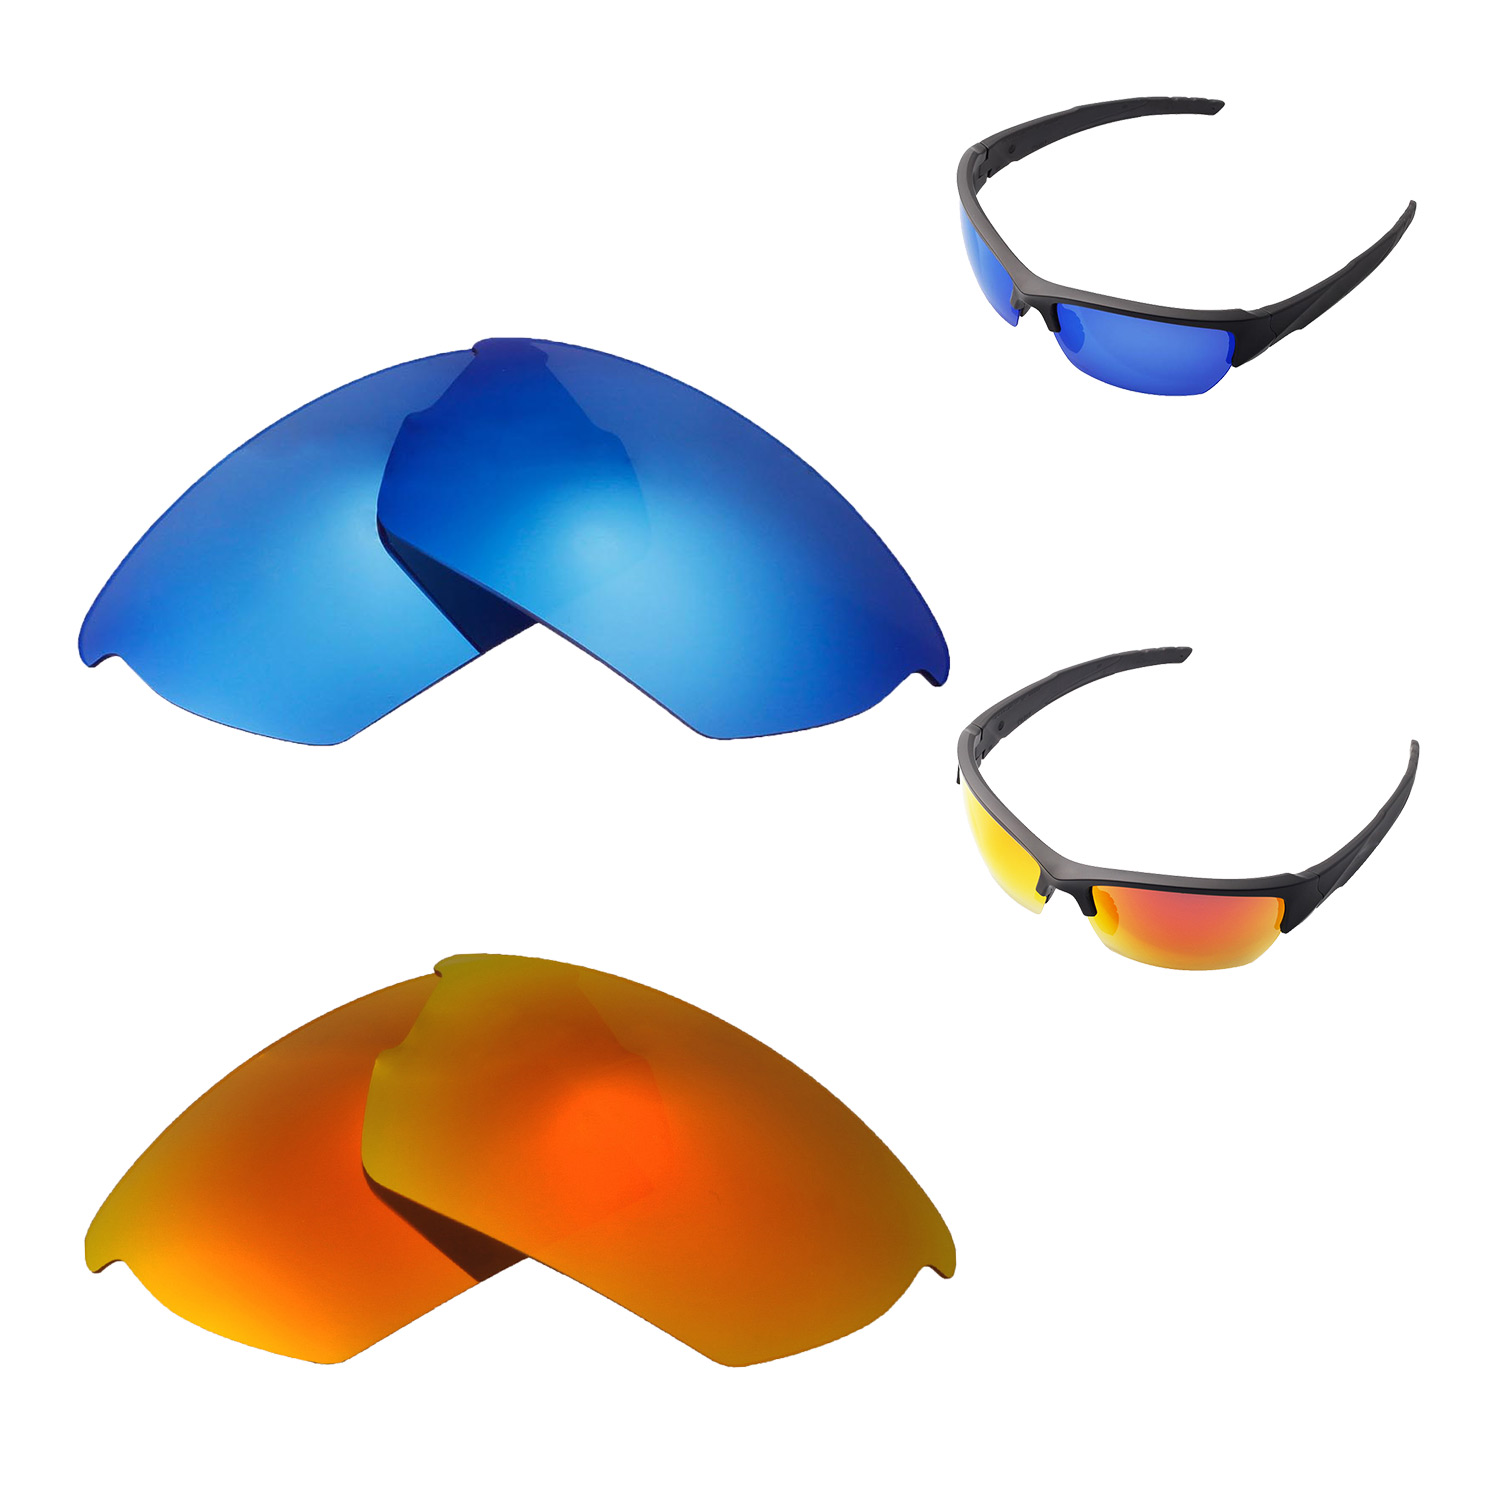 d85a52c66e ... Walleva Polarized Ice Blue Lenses for Wiley X Valor x1  Walleva  Microfiber Lens Cleaning Cloth x2. main image